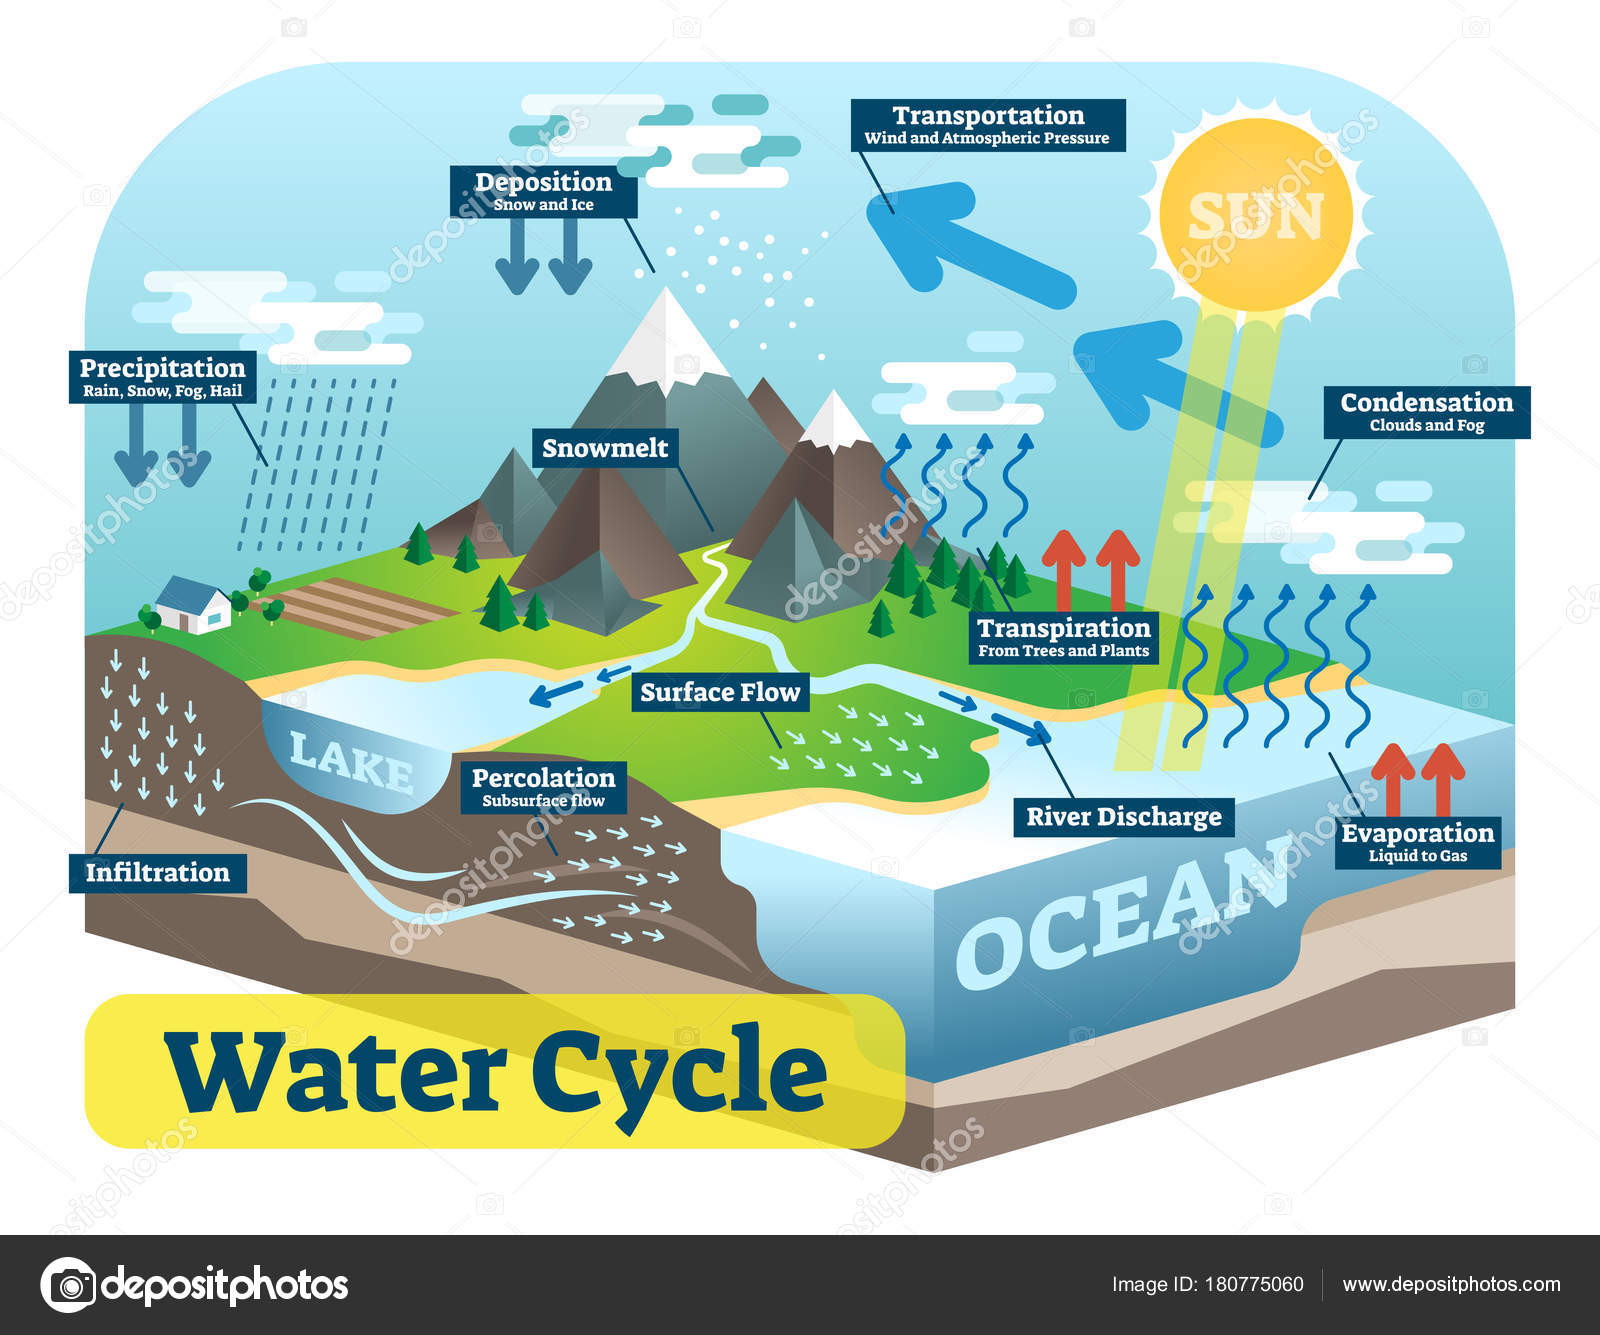 13 147 Water Cycle Vector Images Free Royalty Free Water Cycle Vectors Depositphotos